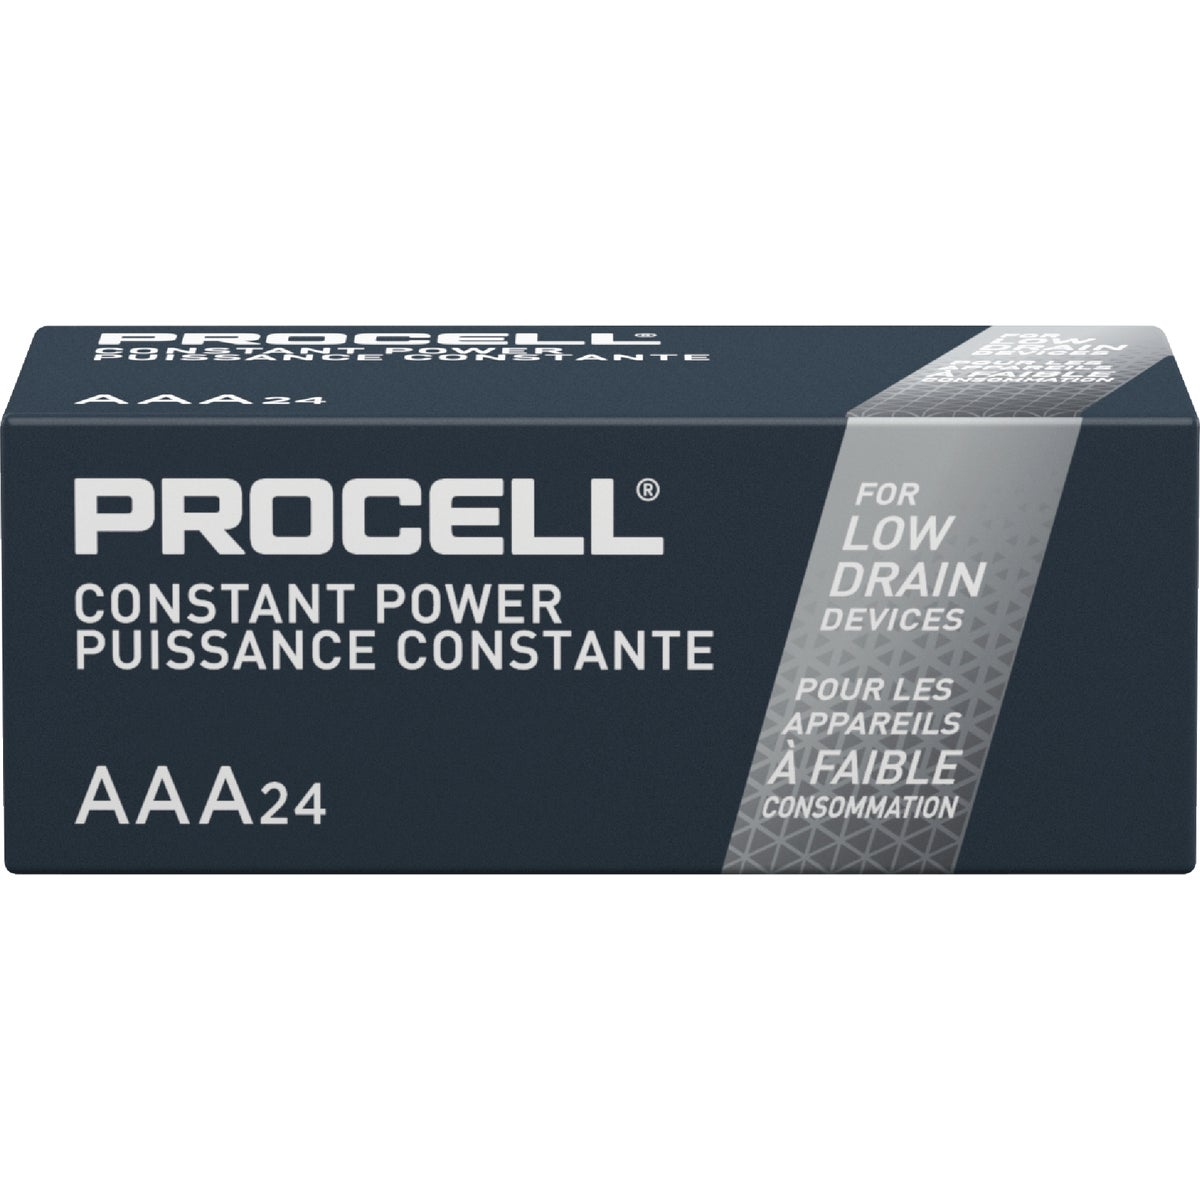 24PK AAA PROCELL BATTERY - 85795 by P & G  Duracell